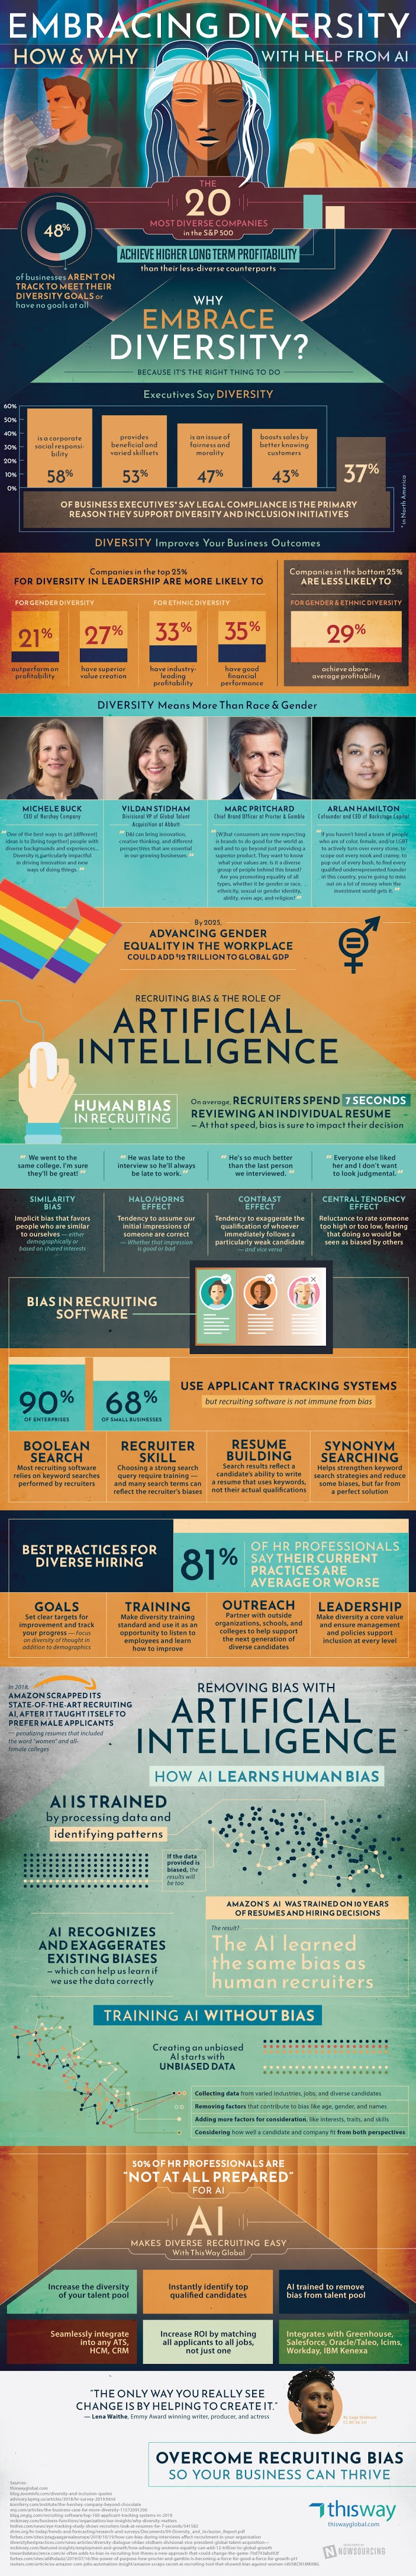 Embracing Diversity: How and Why With Help From AI #infographic #Artificial Intelligence #infographics #Embracing Diversity #Infographic #Featured